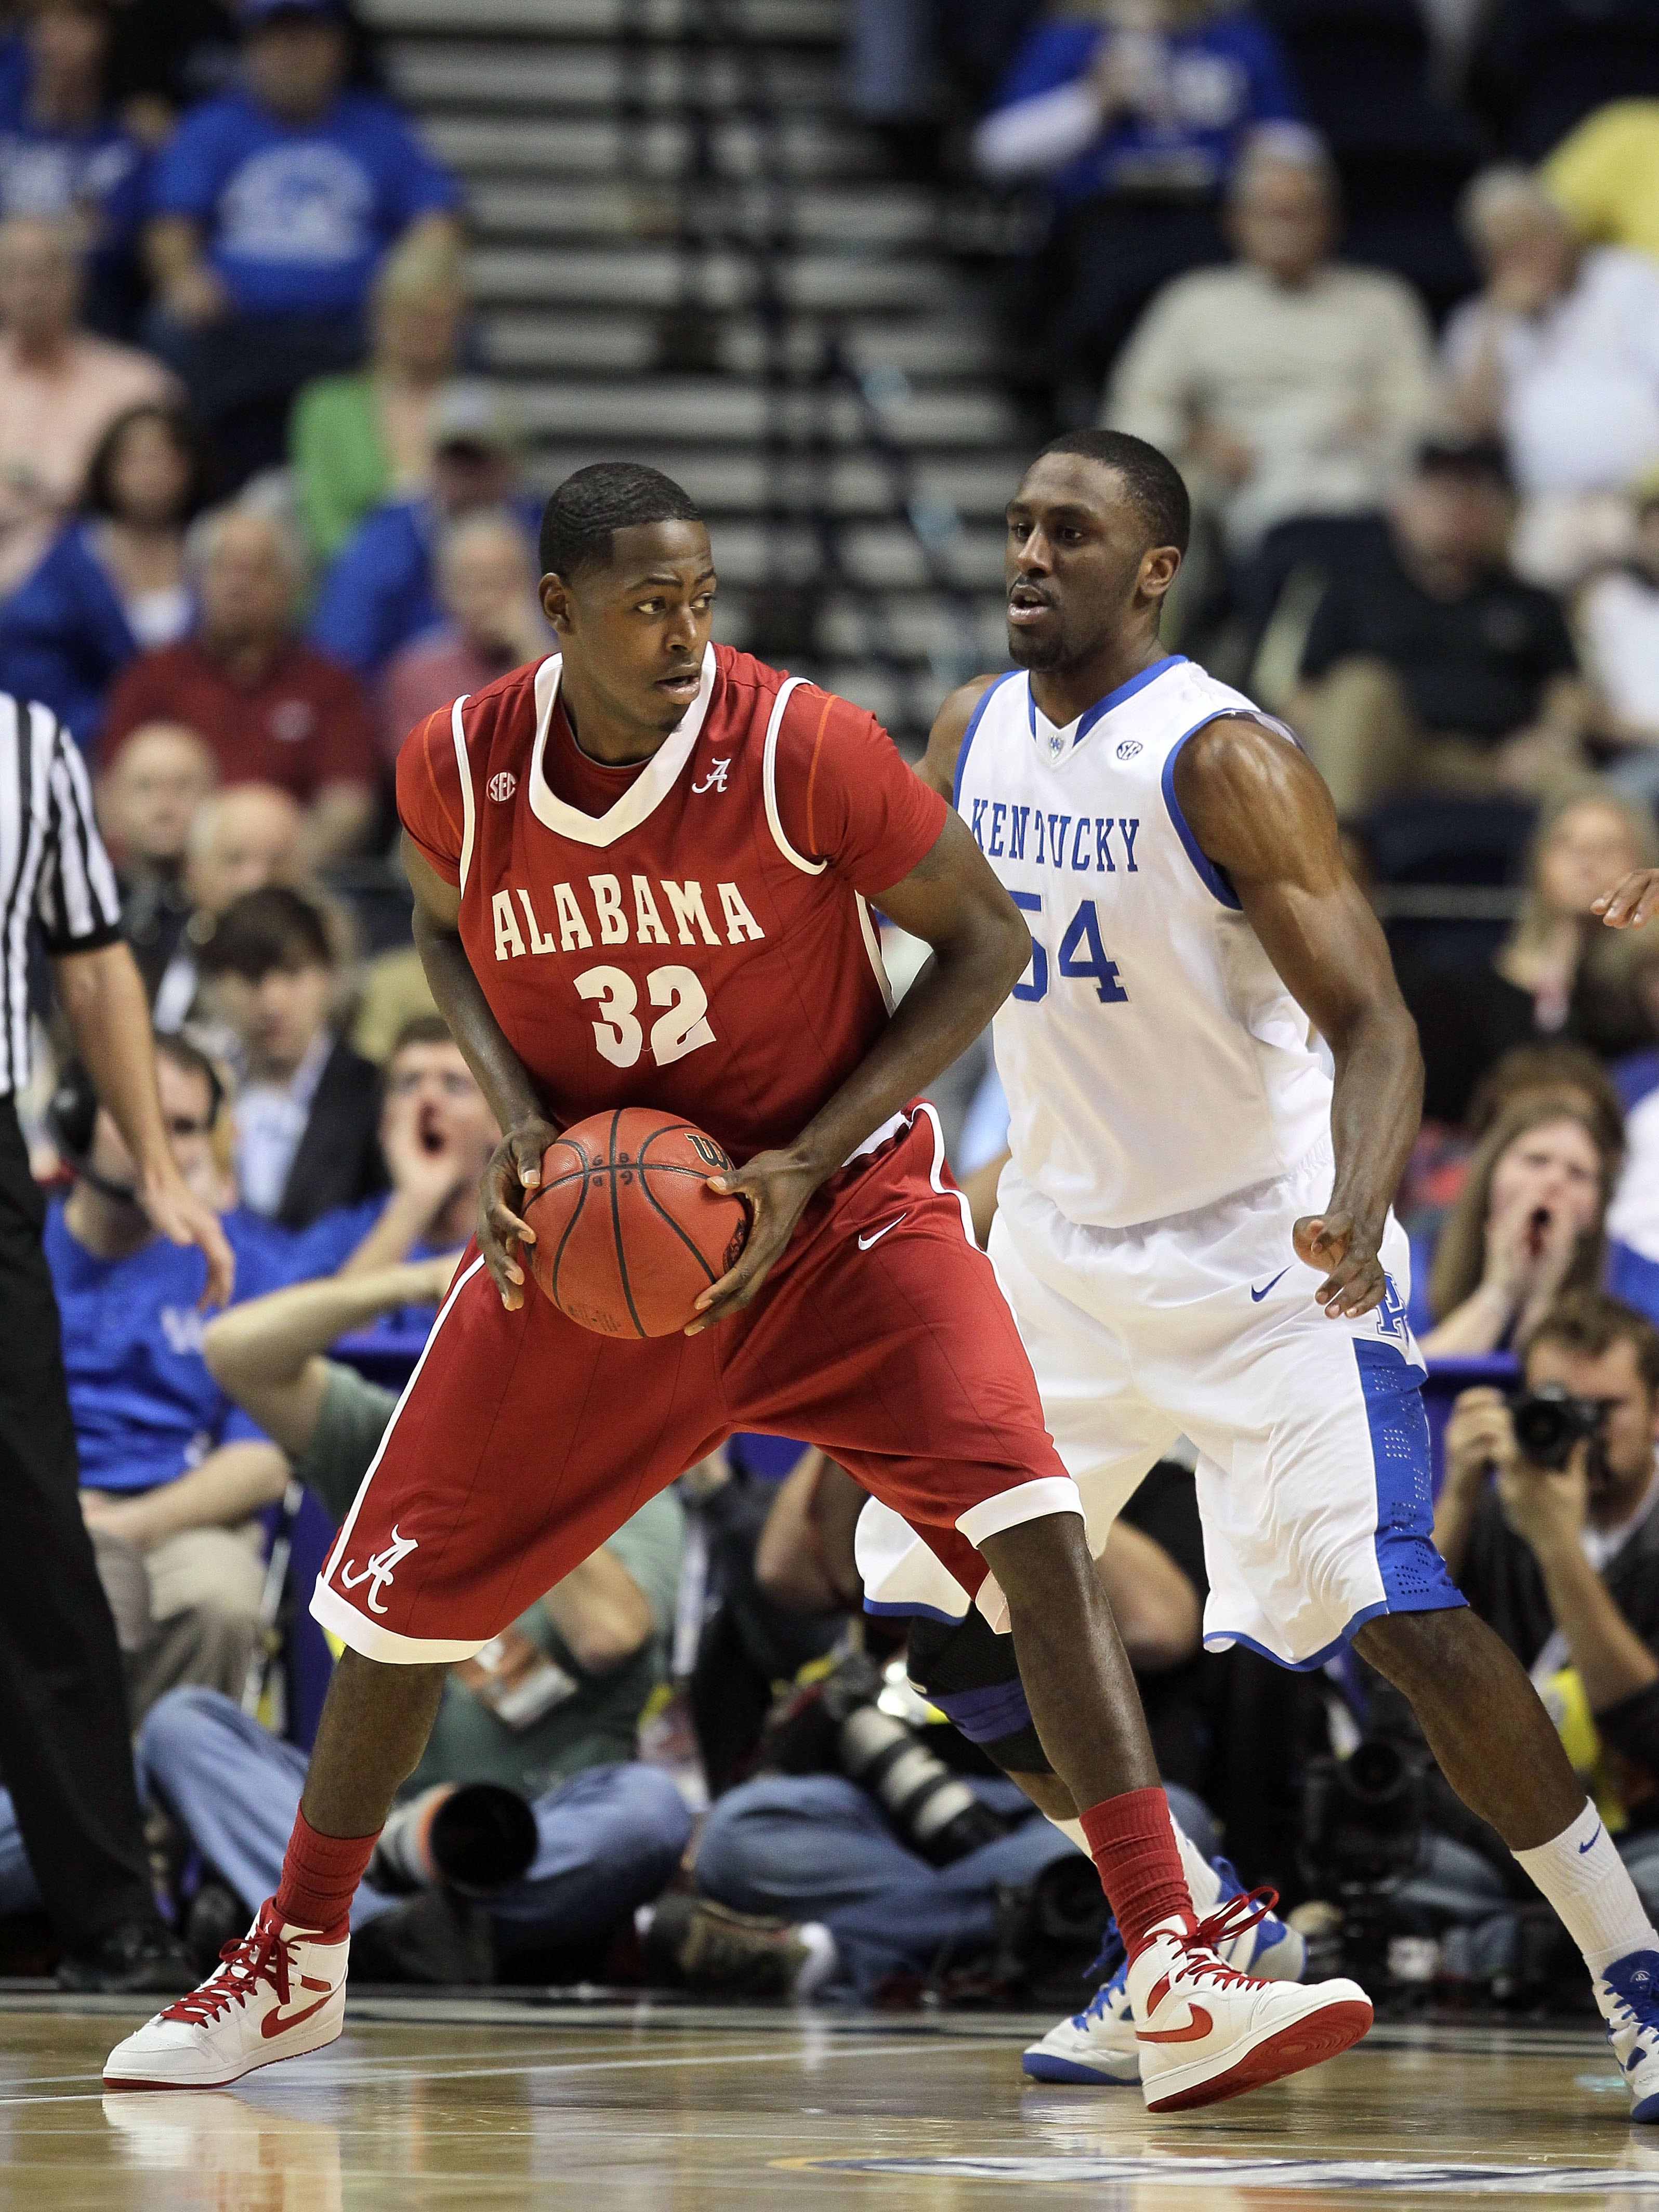 NASHVILLE, TN - MARCH 12:  Jamychal Green #32 of the Alabama Crimson Tide posts up against the Kentucky Wildcats during the quarterfinals of the SEC Men's Basketball Tournament at the Bridgestone Arena on March 12, 2010 in Nashville, Tennessee.  (Photo by